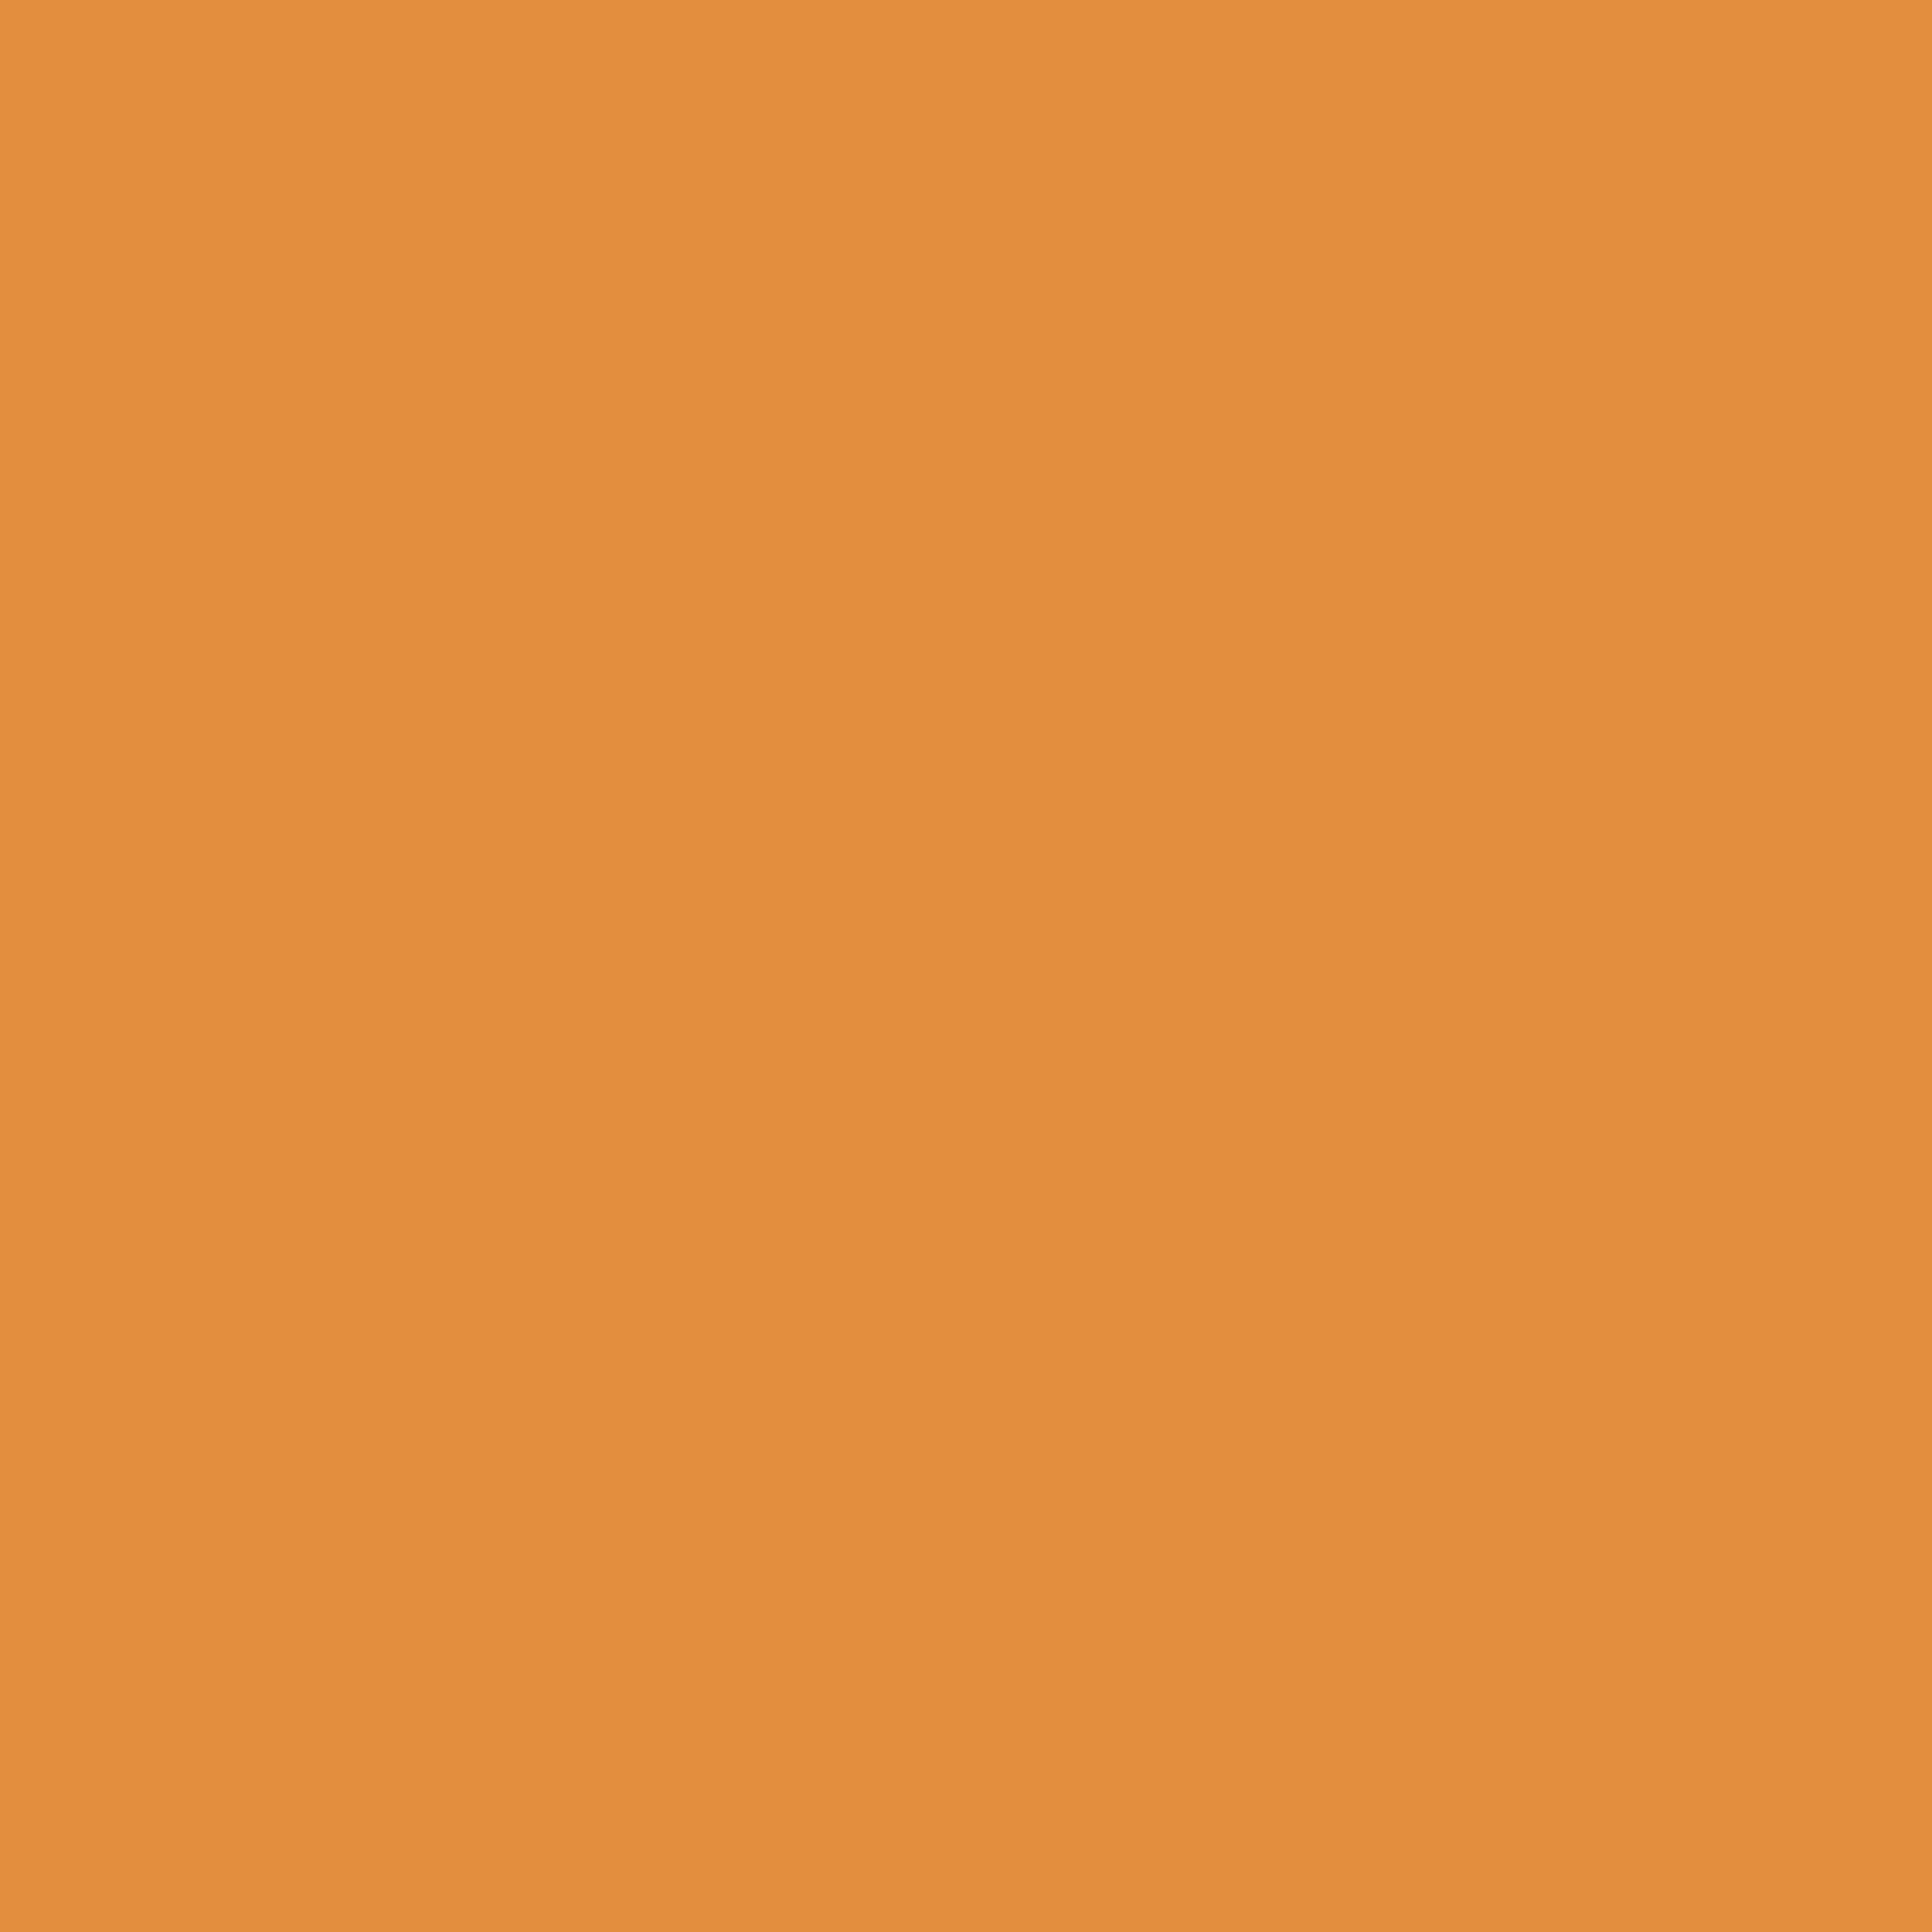 3600x3600 Tigers Eye Solid Color Background